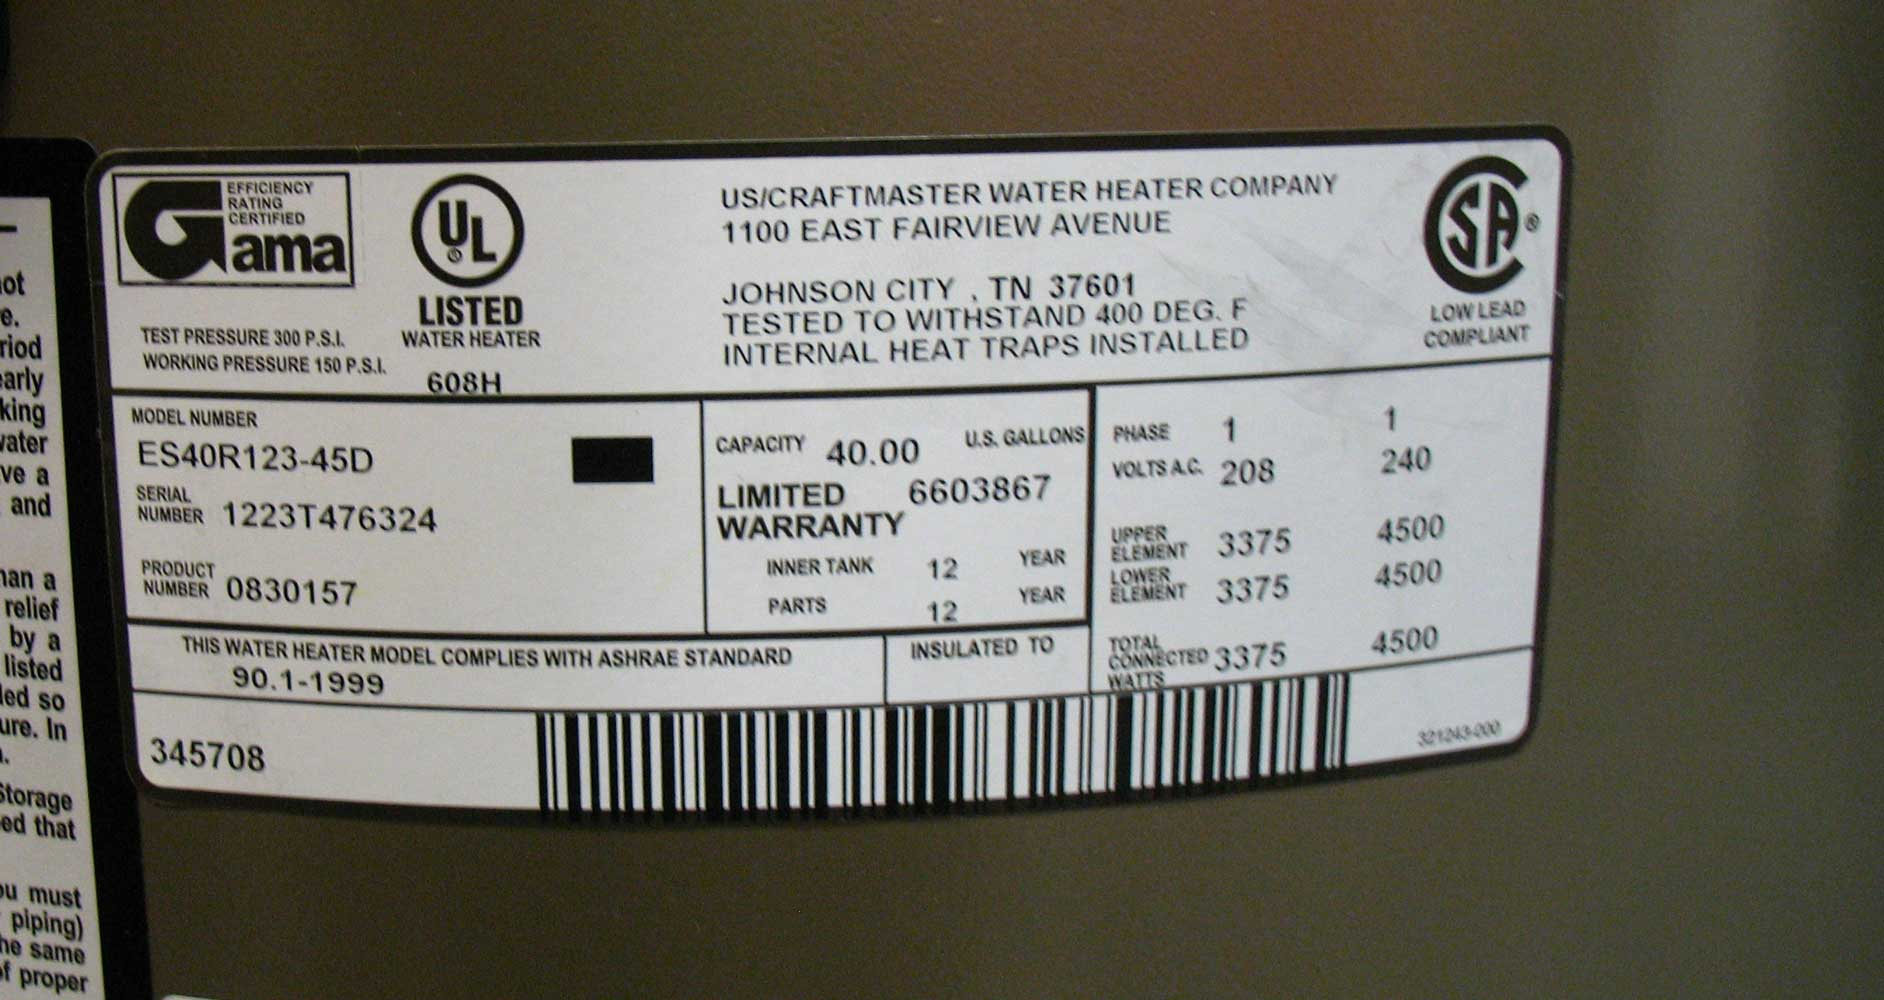 Volts amps watts see larger image different water heater label 4500 watts 240volts label shows 4500 watt elements 240volt total connected 4500 watts which means both geenschuldenfo Choice Image